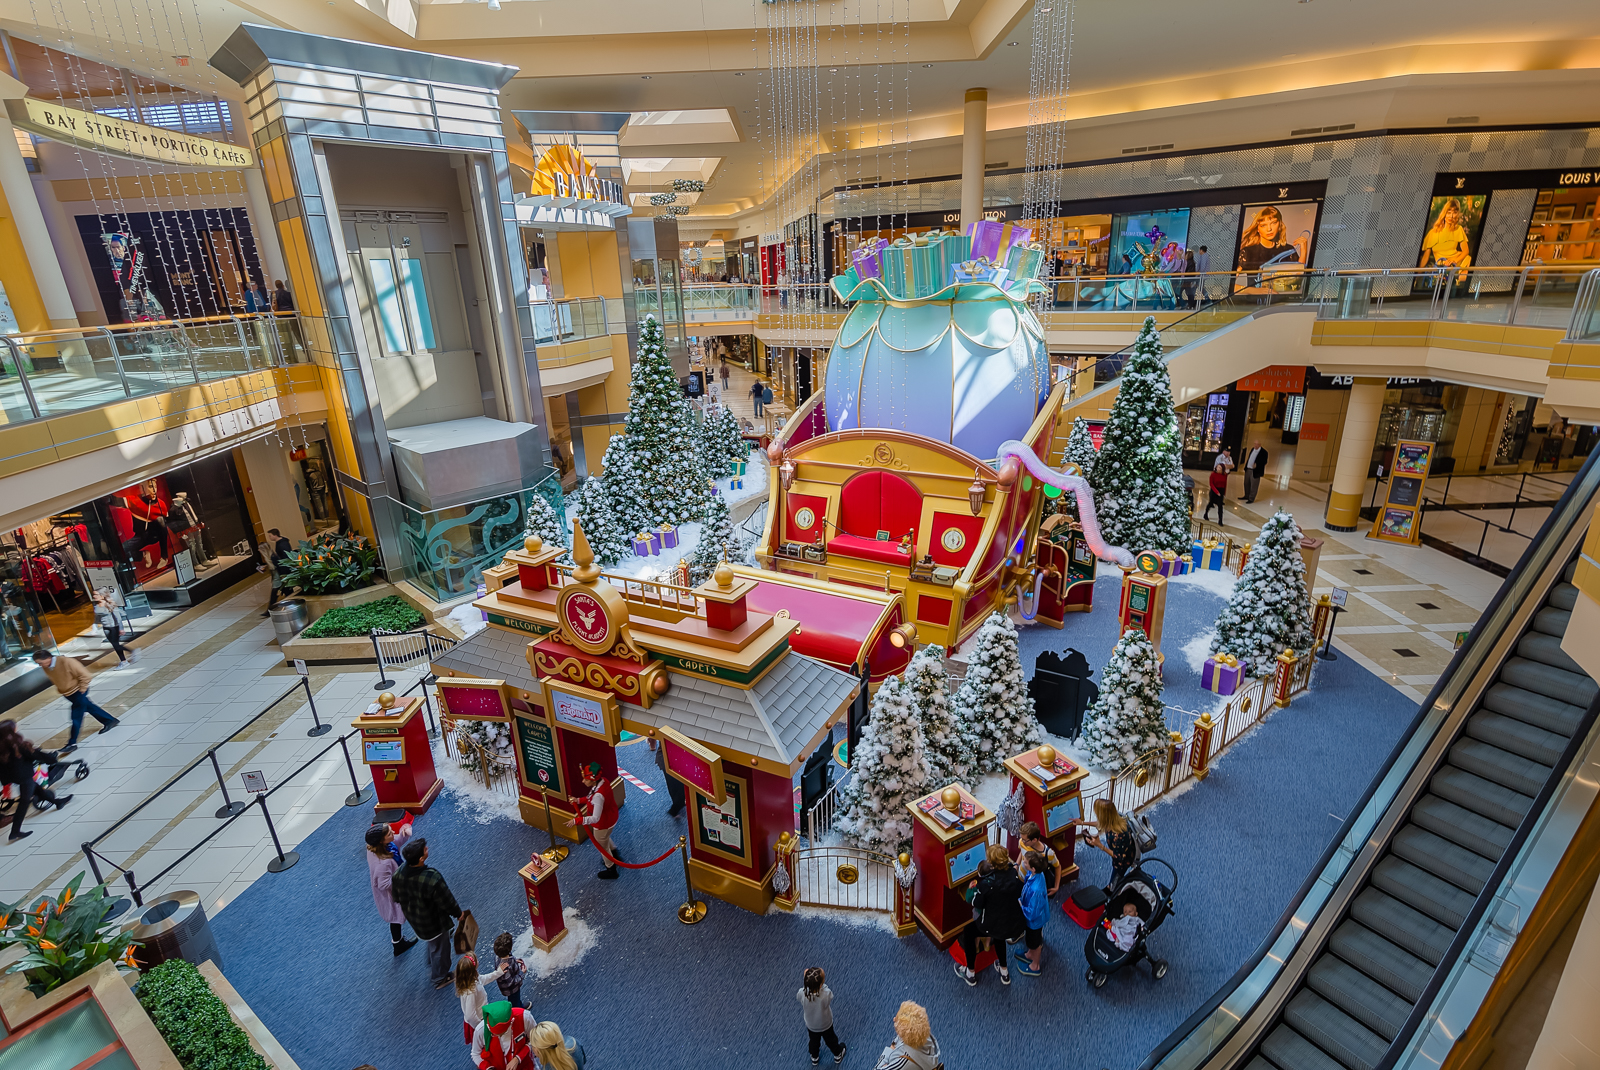 International Plaza, in partnership with Cherry Hill Programs, has established the dominant sensory friendly program for this special audience because Santa welcomes individuals of all ages and abilities.